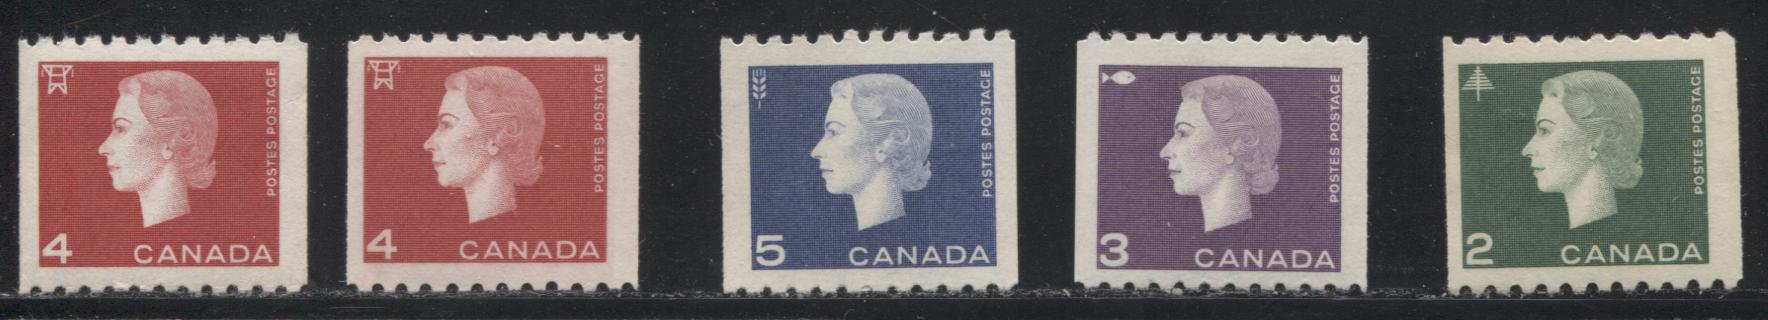 Canada #406-409 2c Green - 5c Violet Blue Queen Elizabeth II, 1962-1967 Cameo Issue, A VFNH Complete Set of Coil Stamps With an Extra Shade of the 4c